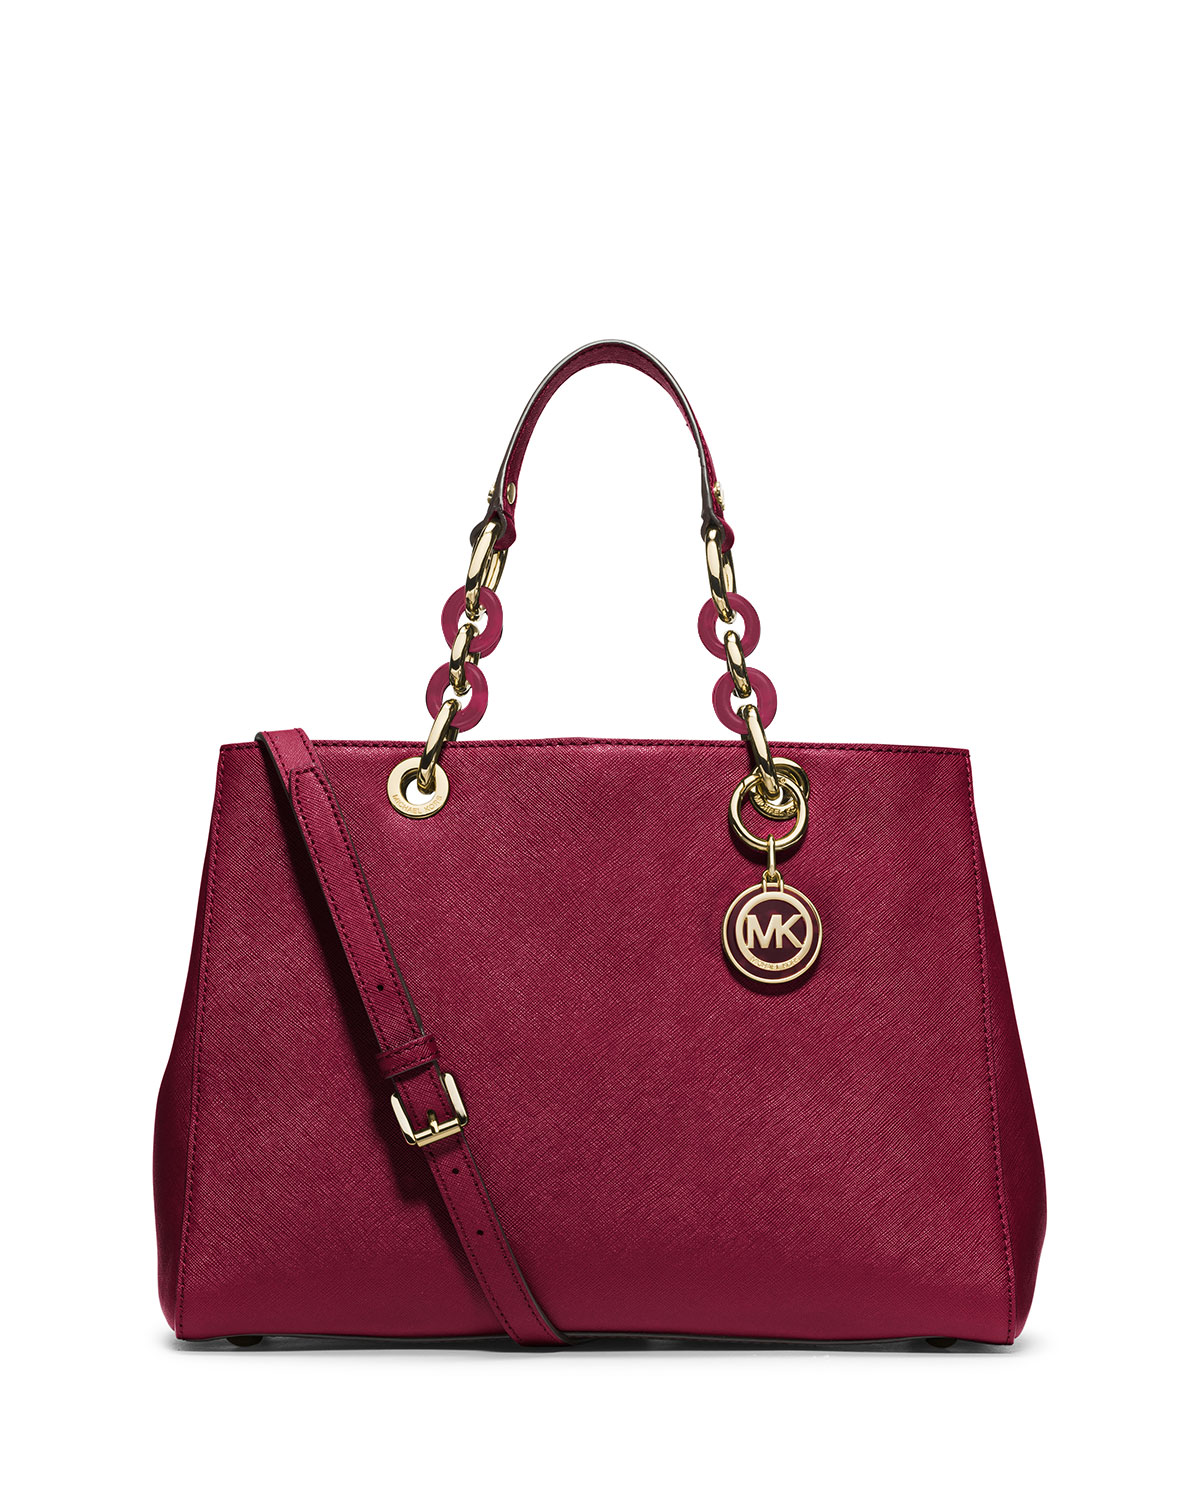 0c41884aa2d19 MICHAEL Michael Kors Hamilton Medium Satchel Bag